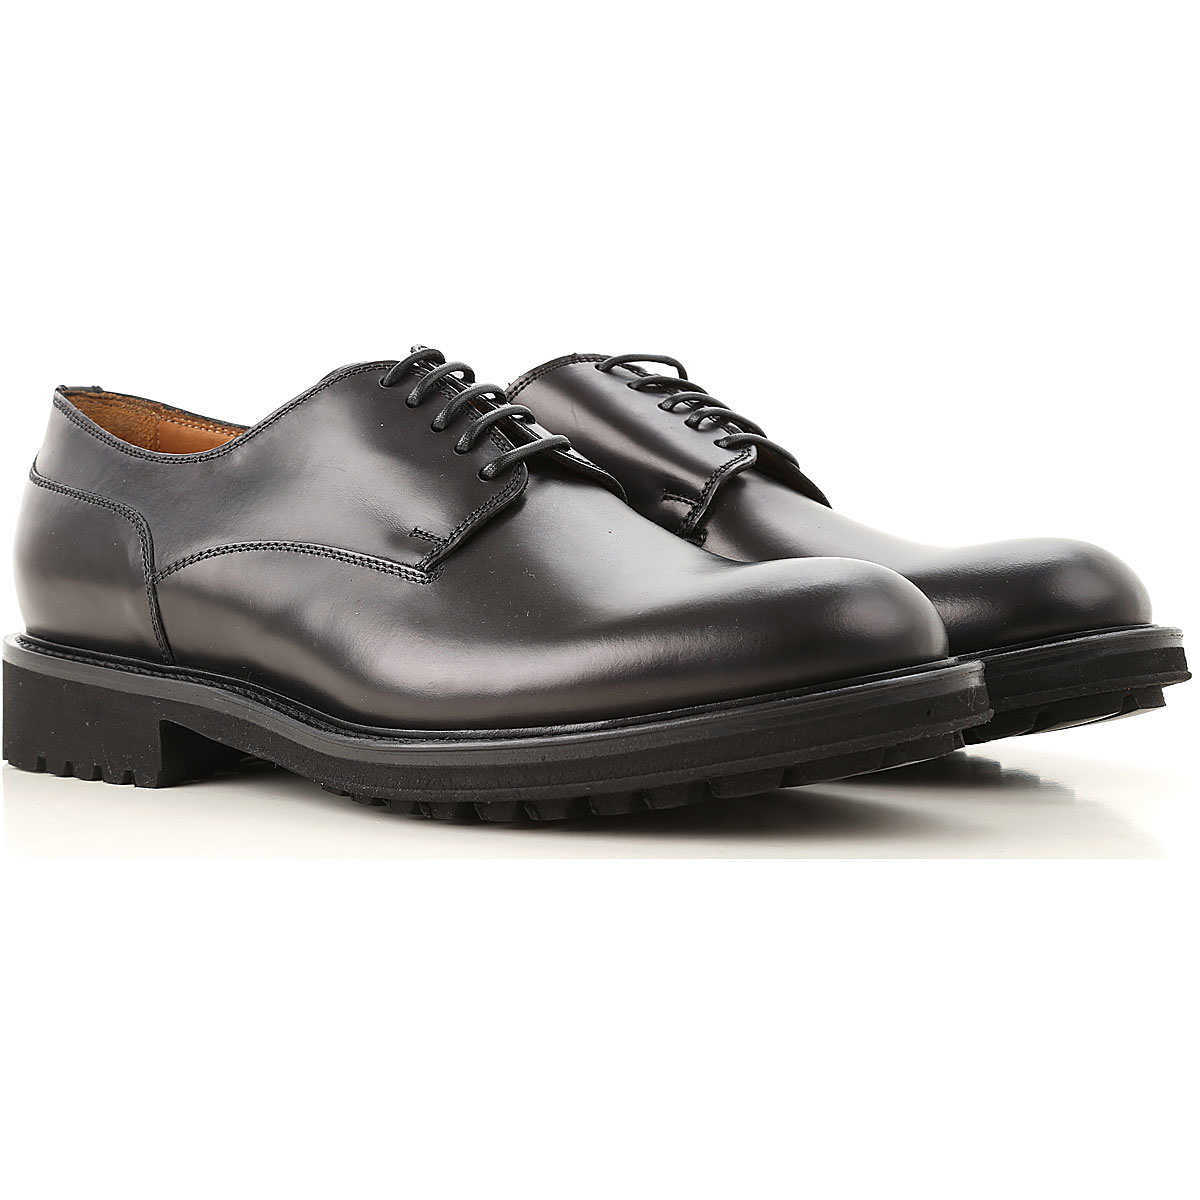 Doucals Lace Up Shoes for Men Oxfords Derbies and Brogues On Sale DK - GOOFASH - Mens FORMAL SHOES